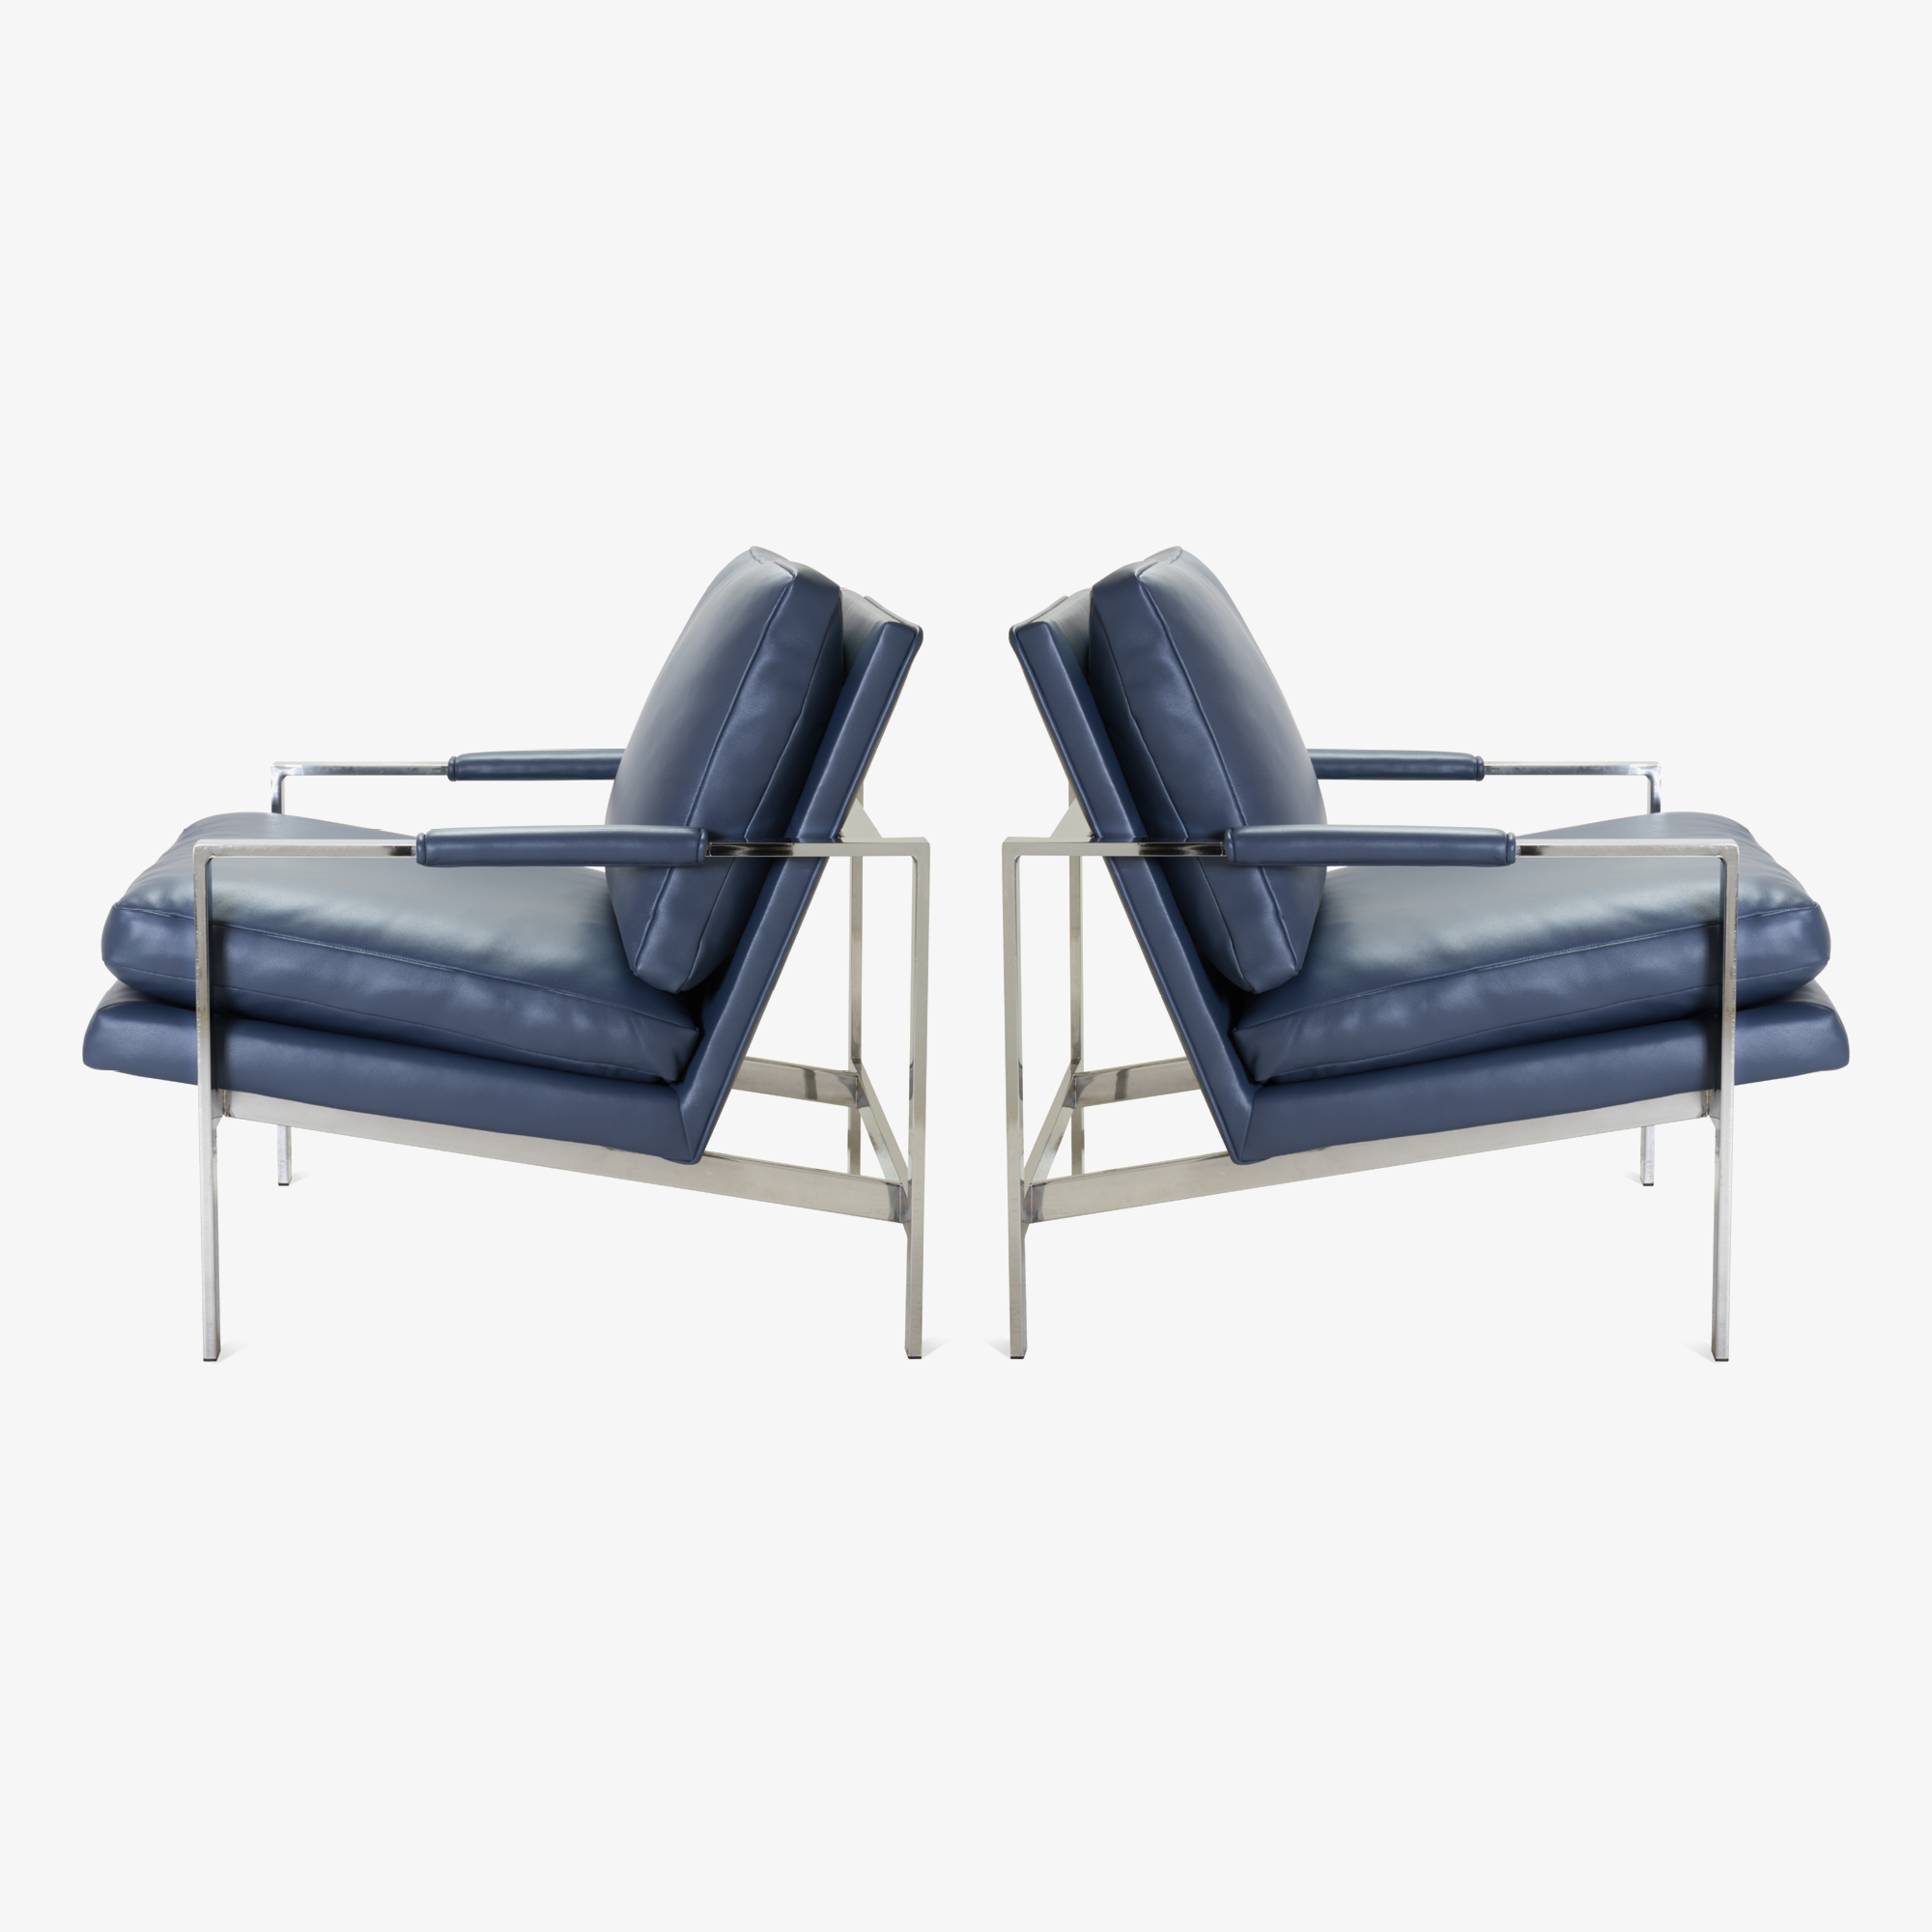 Flat-Bar Club Chairs in Navy Leather by Milo Baughman for Thayer Coggin2.png